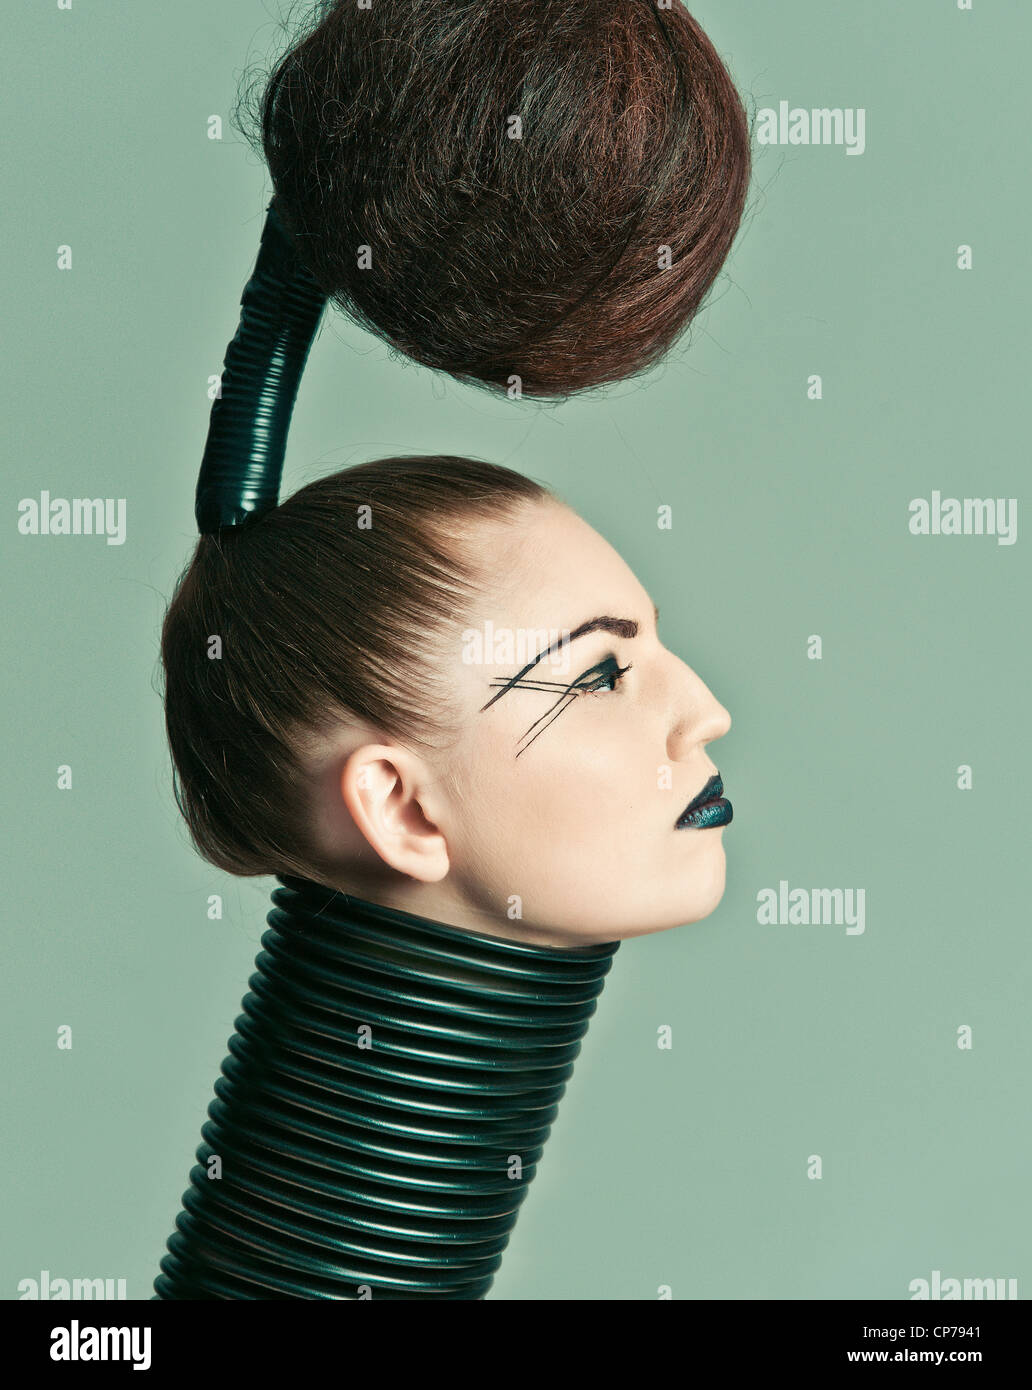 a crazy avant garde hairstyle Stock Photo: 48104001 - Alamy